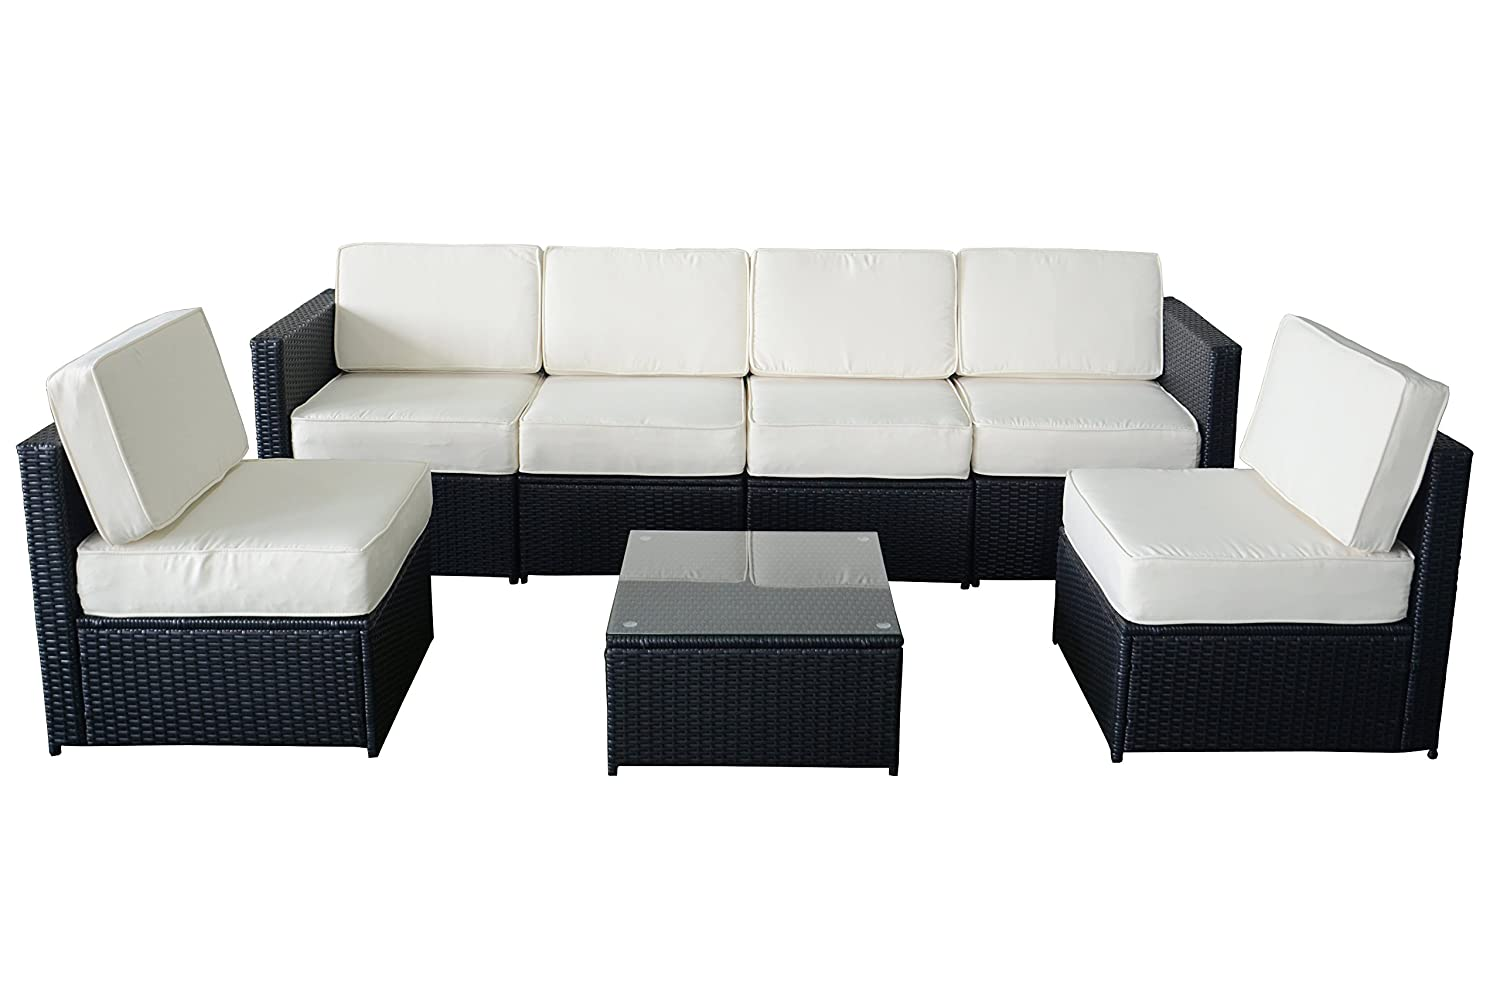 18 Best Patio Sectional Sofas Amp Patio Sectional Furniture